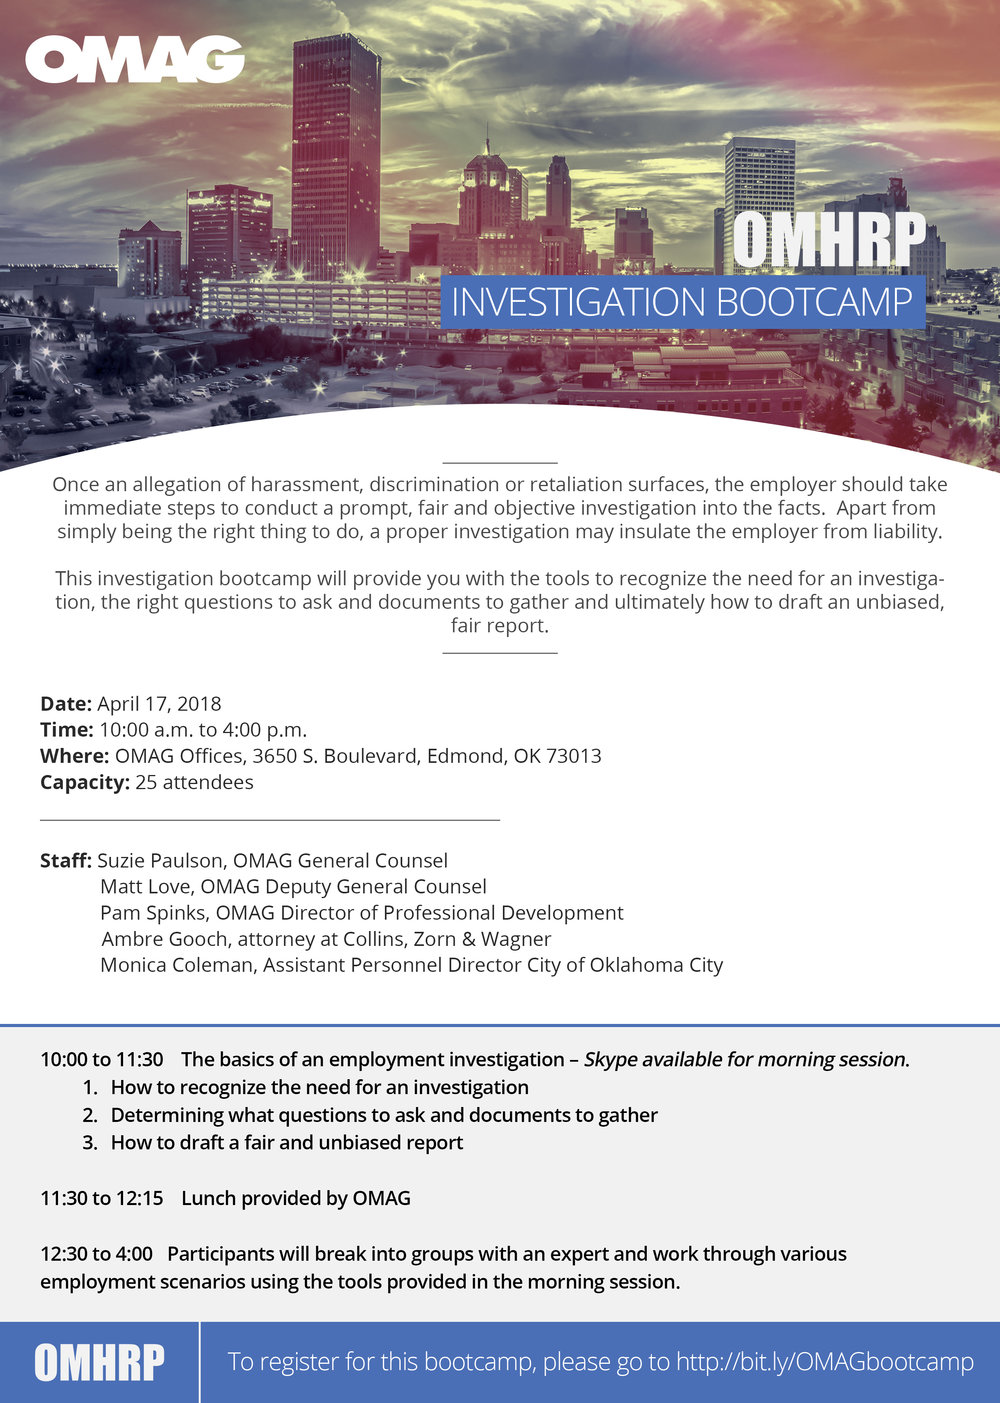 OMHRP Bootcamp Flyer.jpg